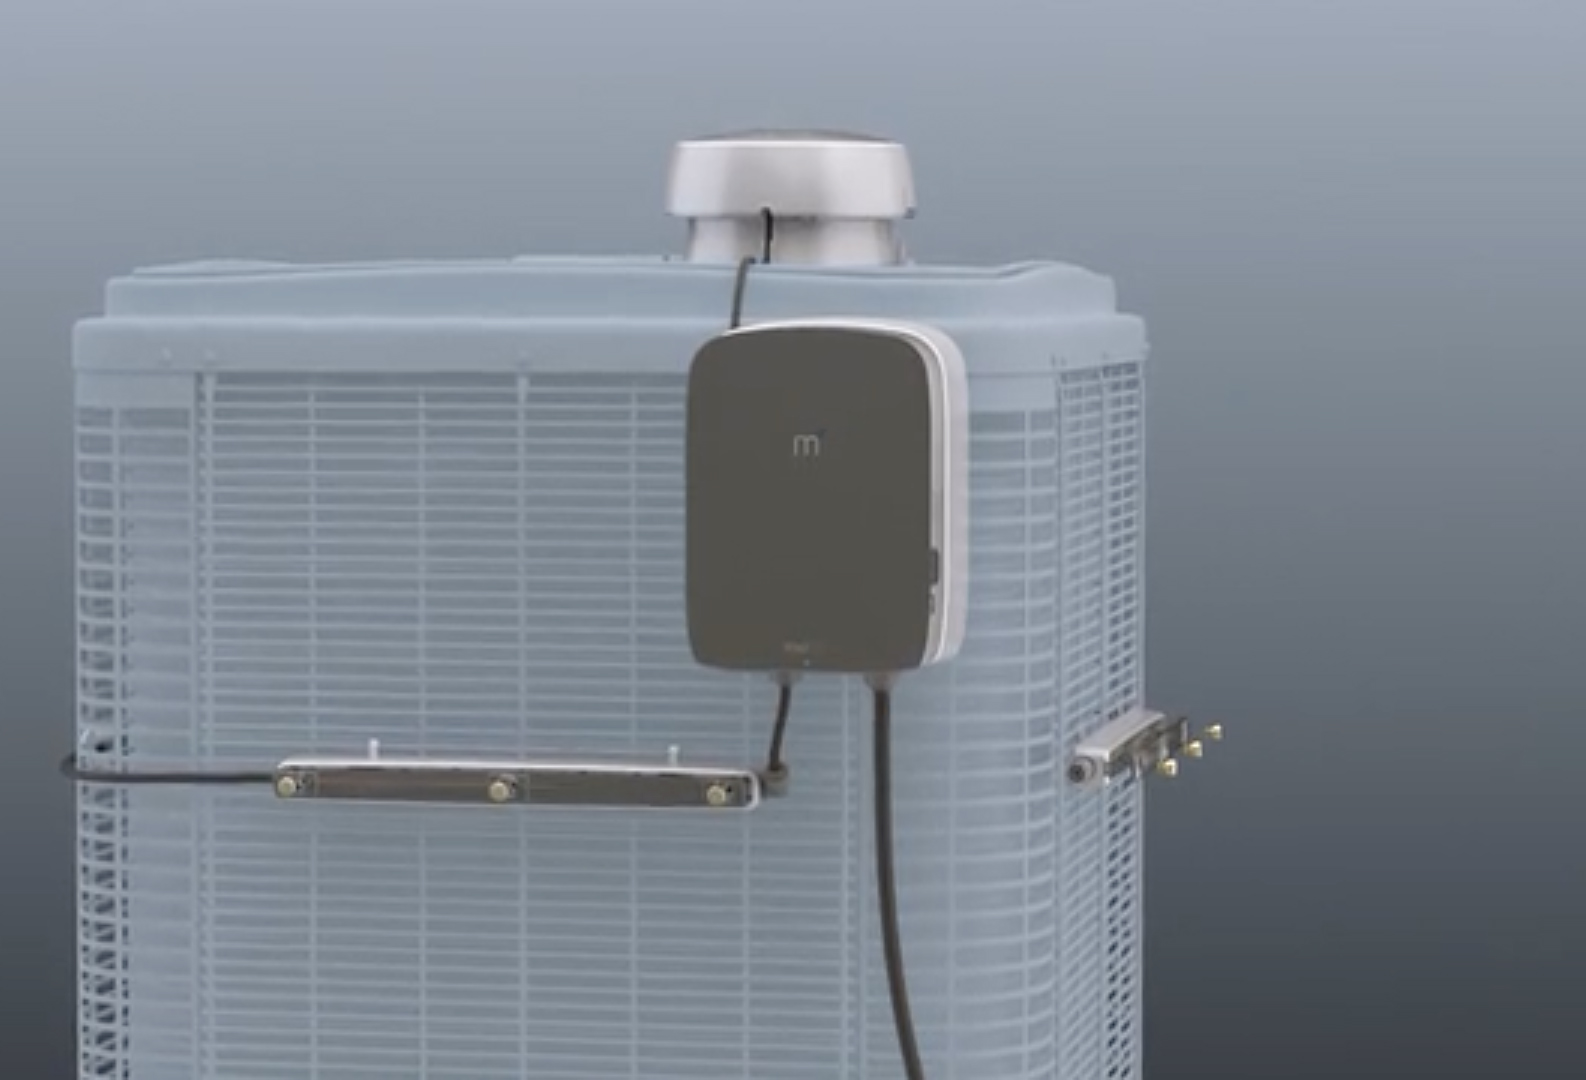 Mistbox keeps air conditioners cool to improve efficiency